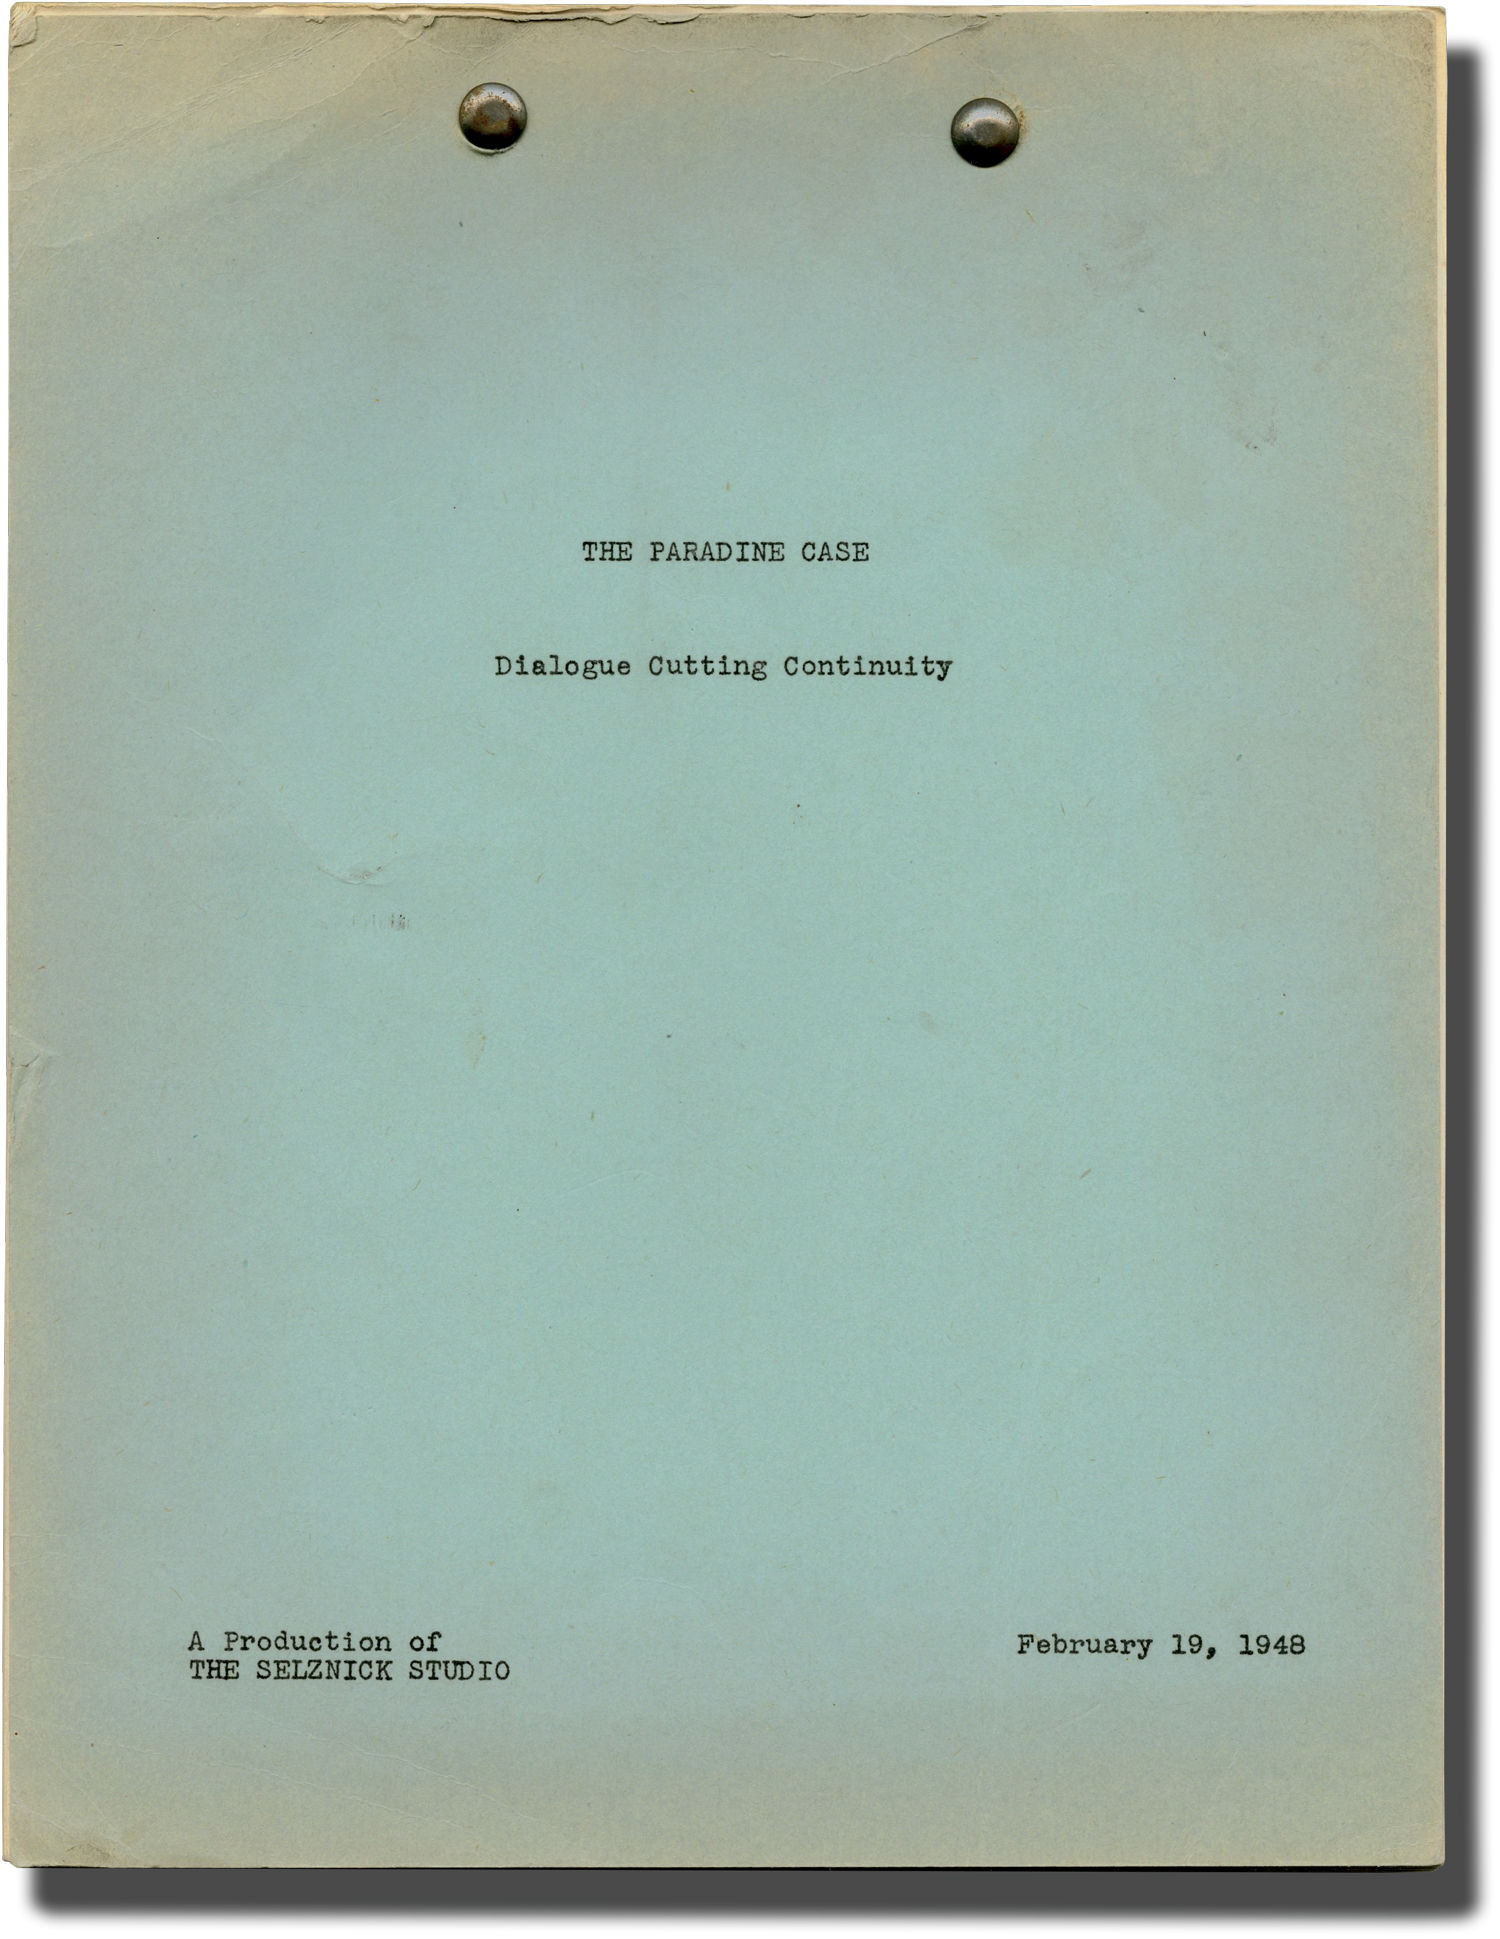 Post Production Los Angeles The Paradine Case Post Production Script For The 1947 Film By Charles Laughton Starring Alma Reville Screenwriters Gregory Peck Hardcover